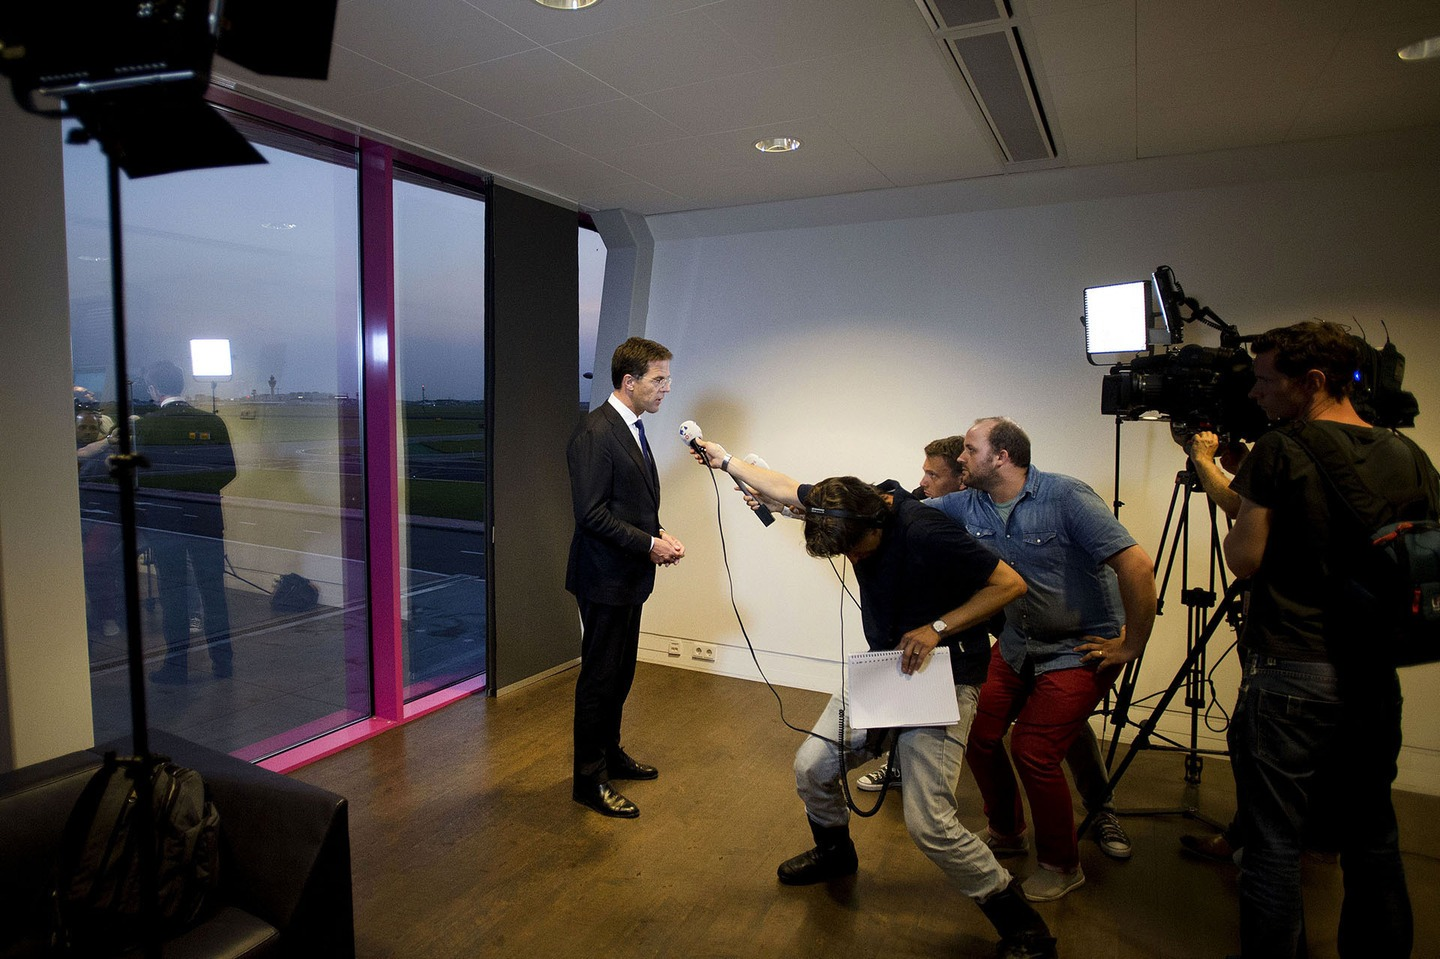 Dutch Prime Minister Mark Rutte gives a short statement to the press at Schiphol Airport near Amsterdam on July 17, 2014 regarding the Malaysia Airlines plane traveling from Amsterdam to Kuala Lumpur that crashed in the Ukraine.